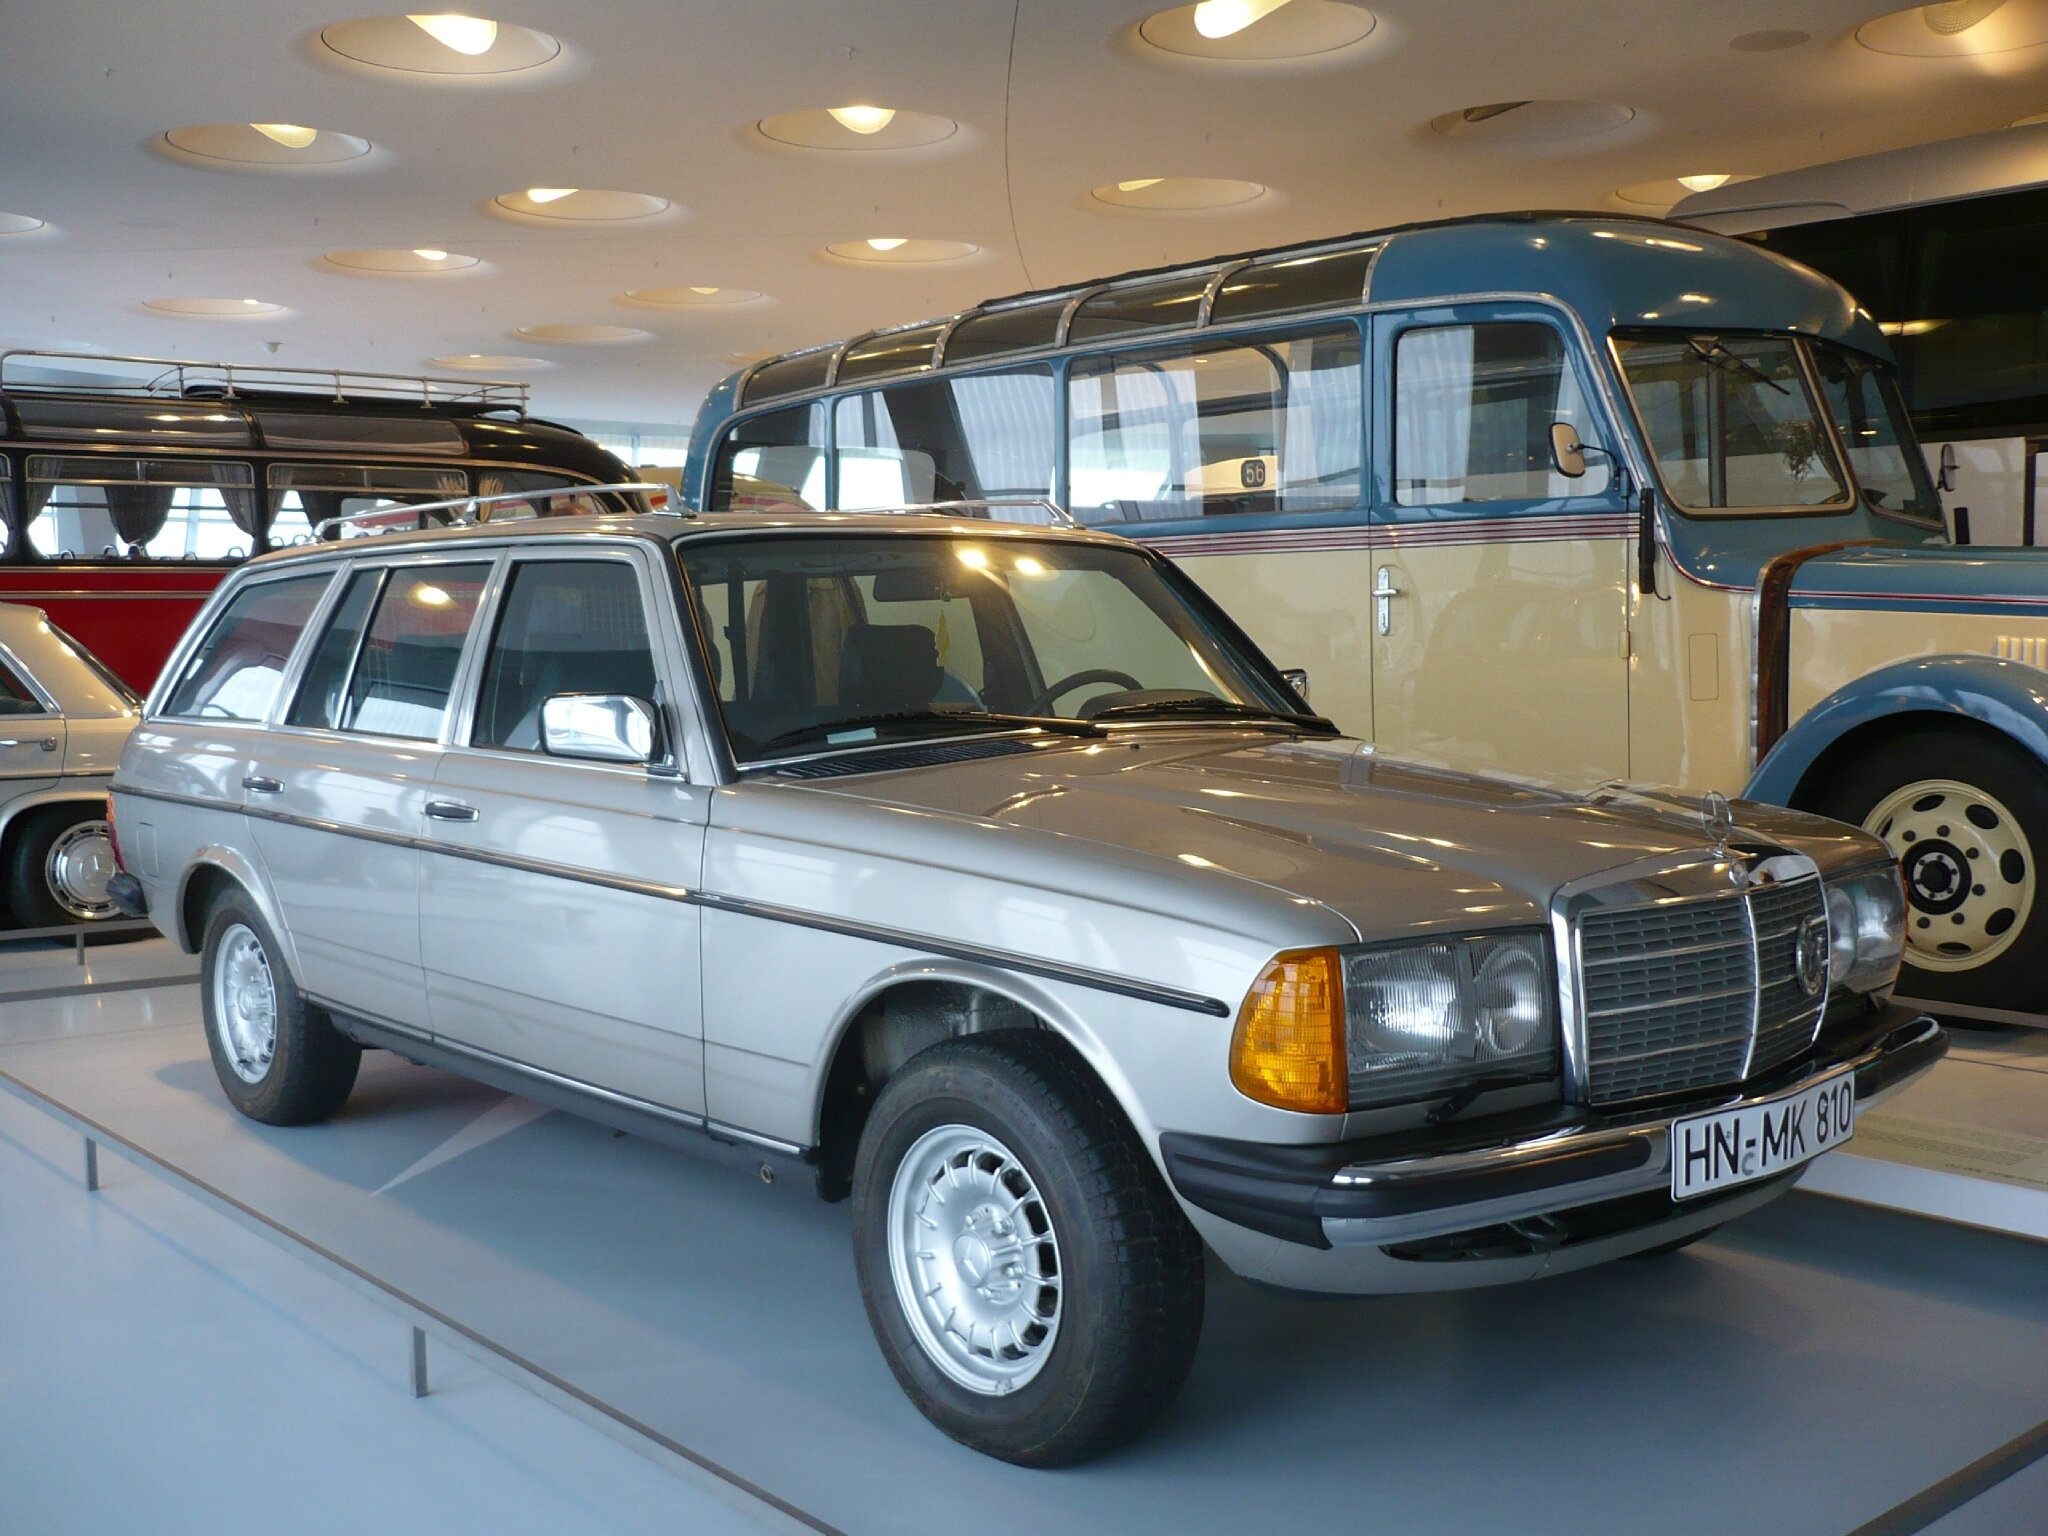 mercedes 300 td w123 break 1985 stuttgart 1 photo de 084 visite au mus e mercedes benz. Black Bedroom Furniture Sets. Home Design Ideas